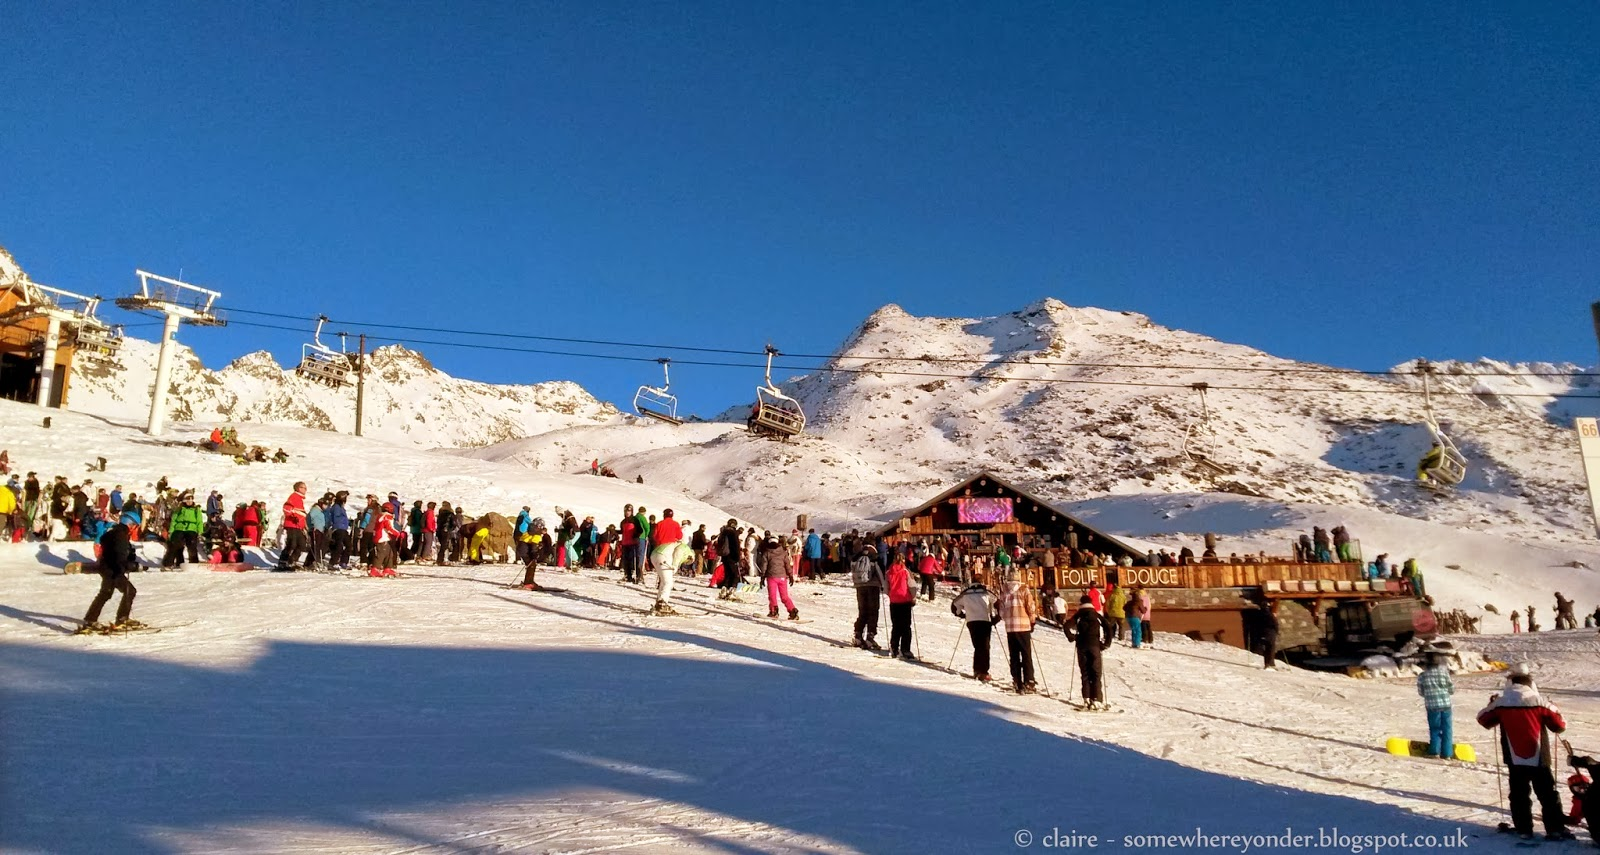 Skiers heading to La Folie Douce to party in the afternoon sun - Val Thorens, France